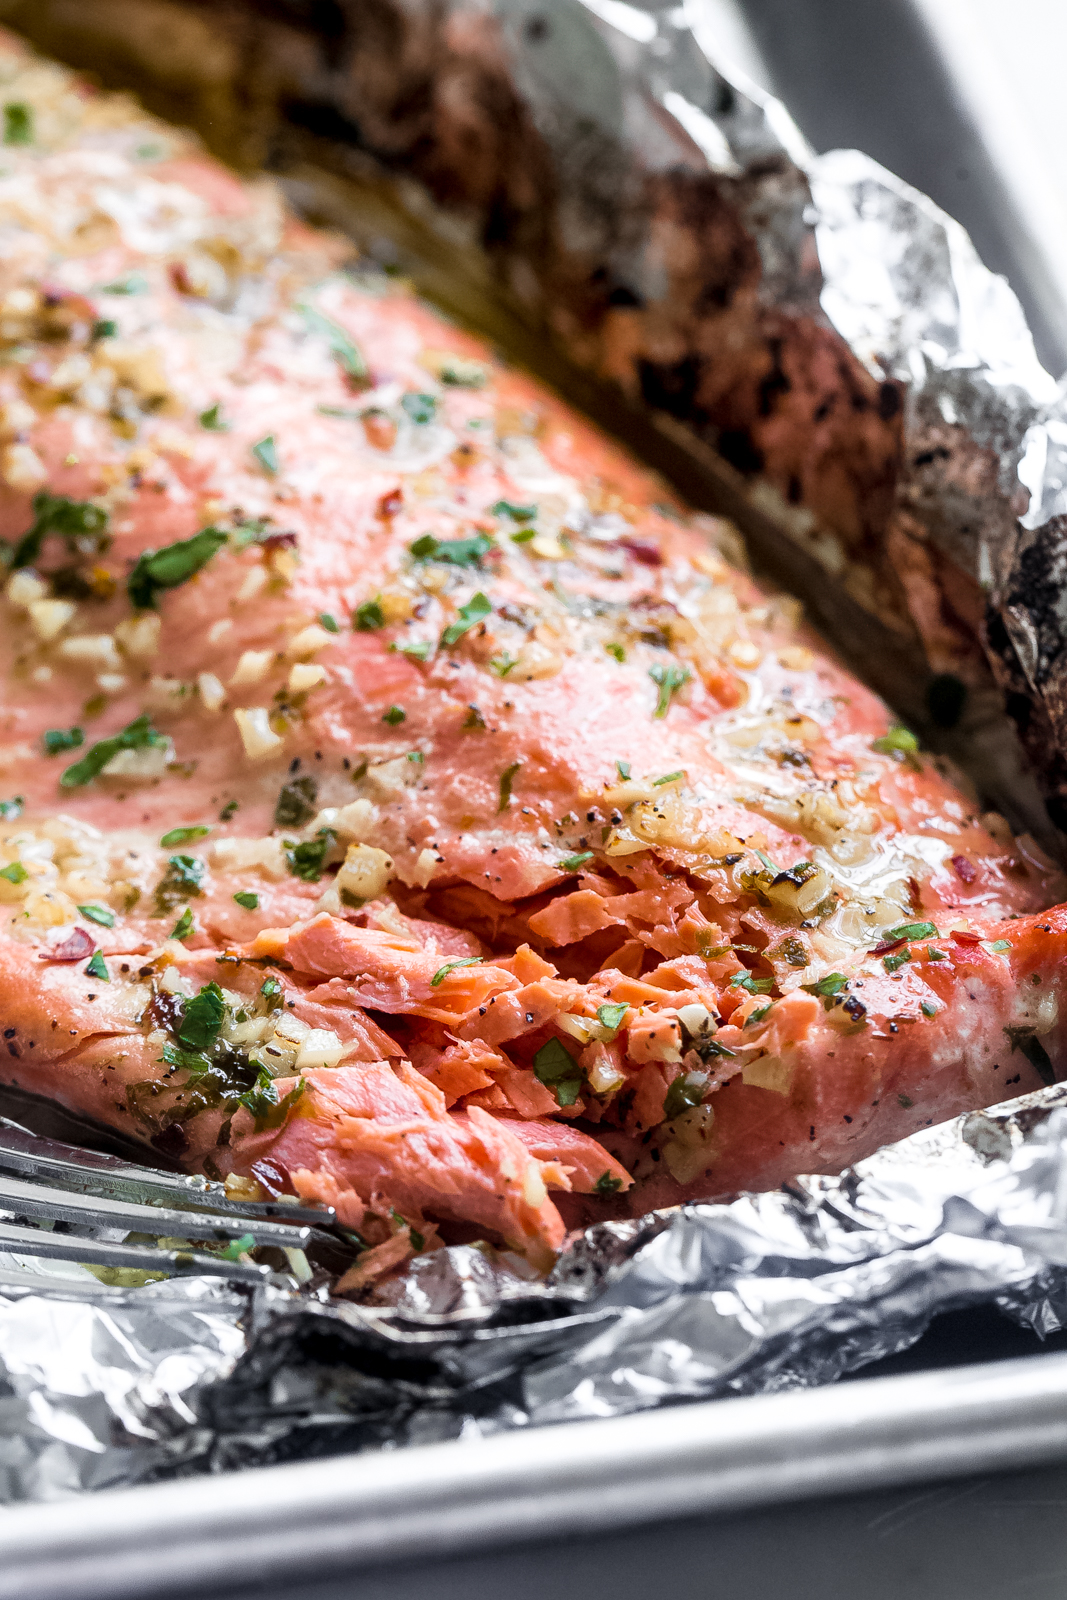 garlic butter baked salmon in foil flaked with a fork to show texture